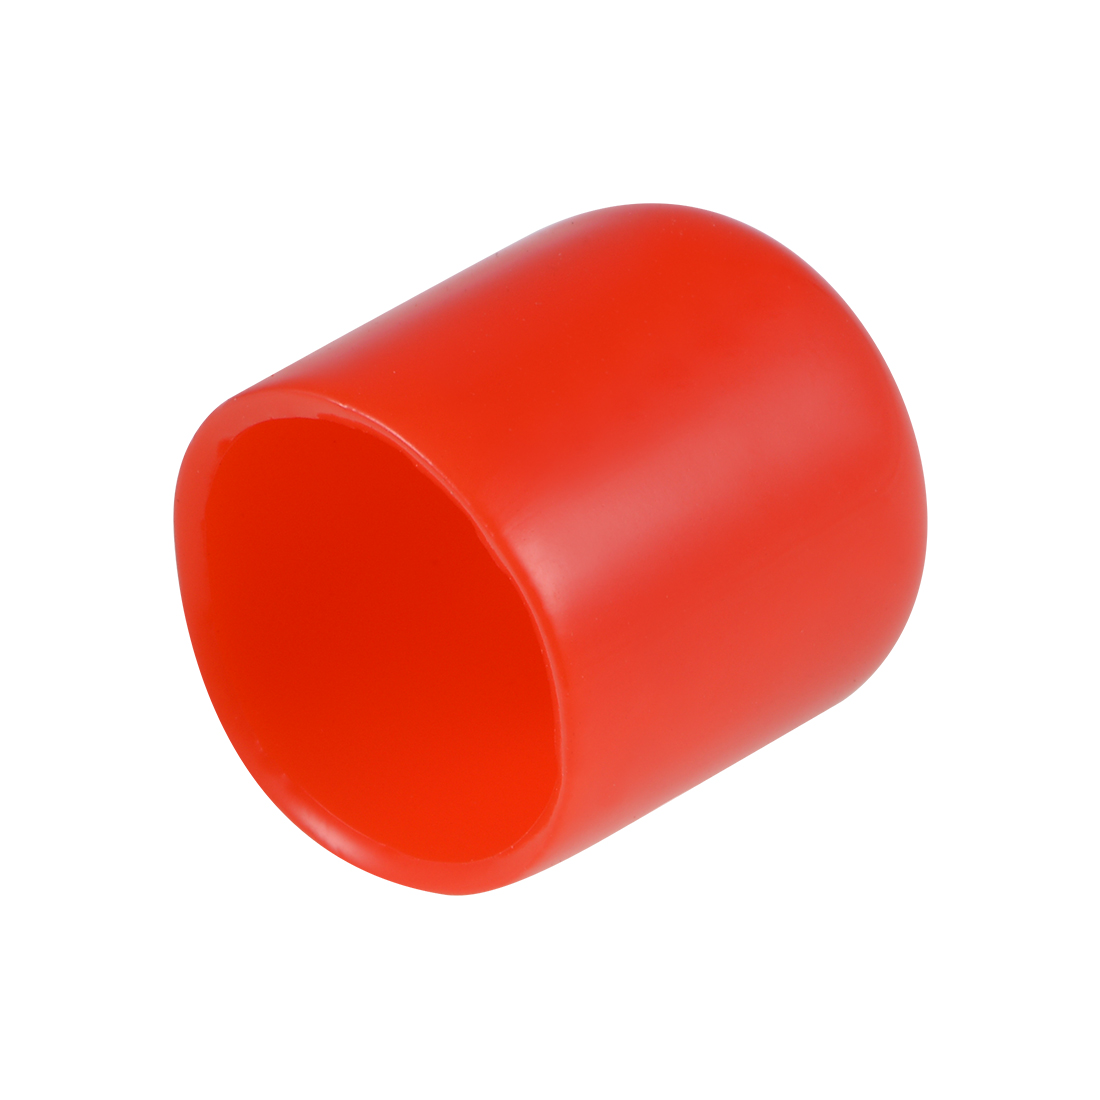 Screw Thread Protector, 16mm ID Round End Cap Cover Red Tube Caps 10pcs